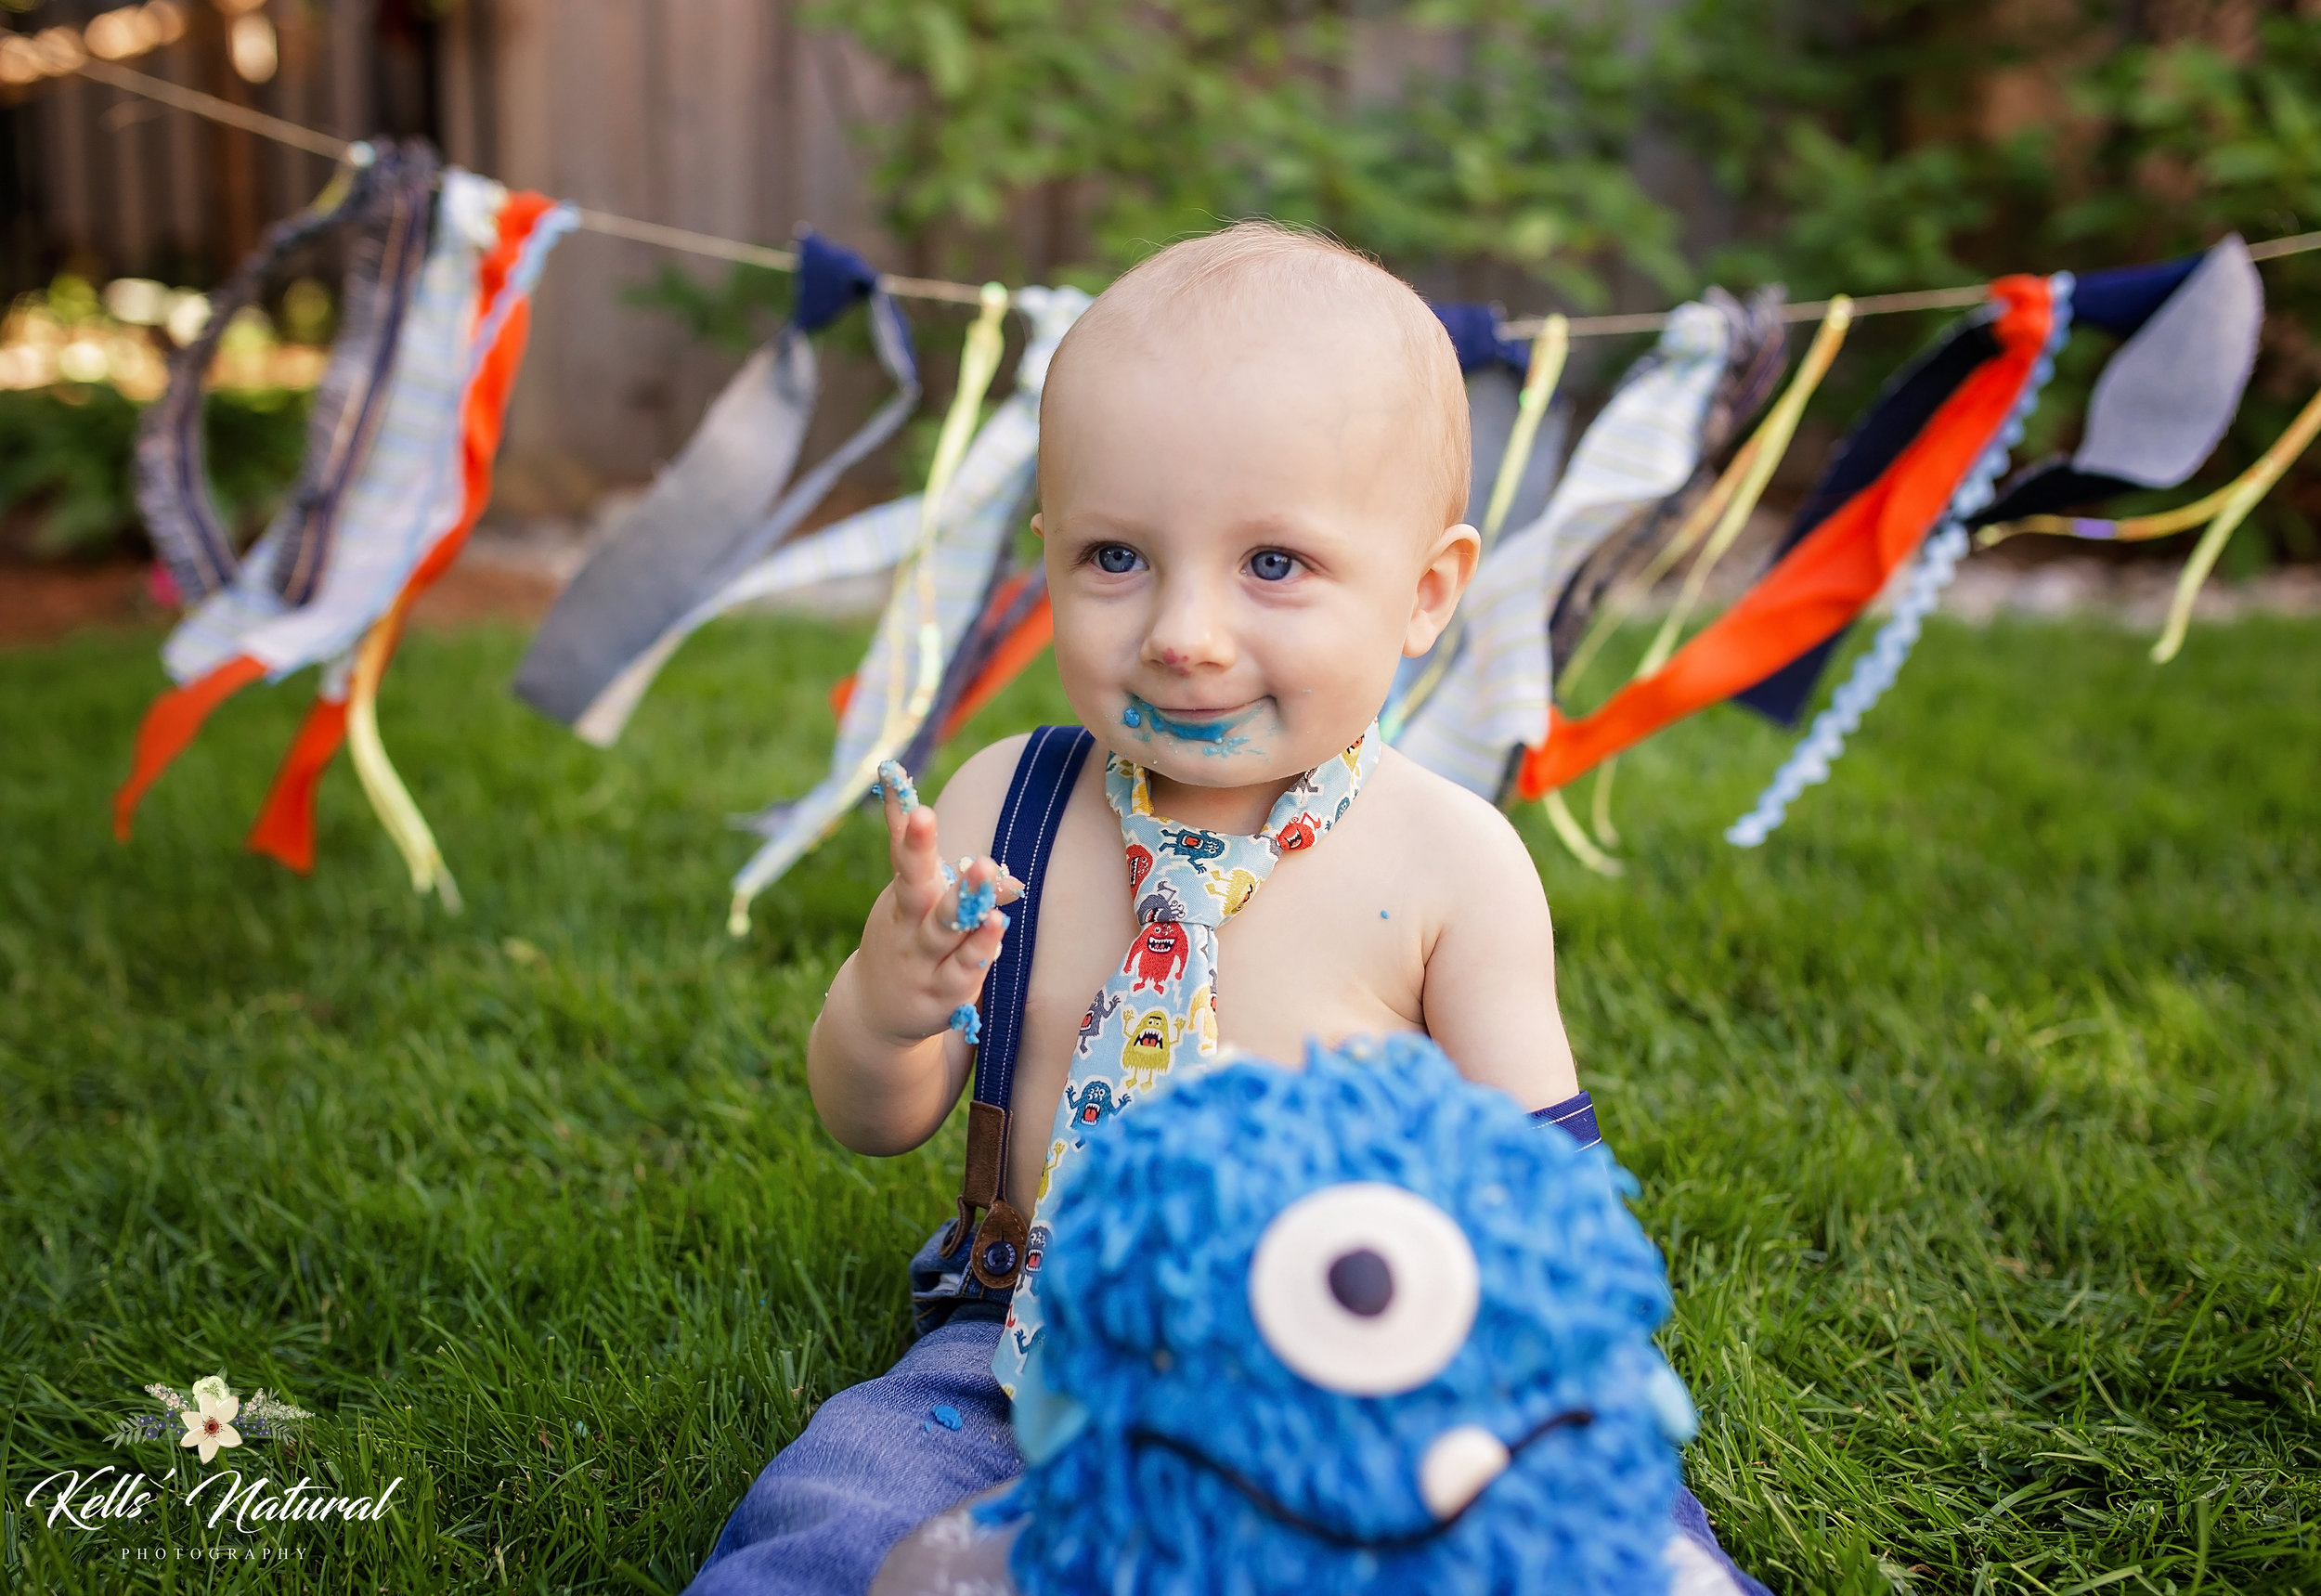 kids birthday photo ideas.jpg